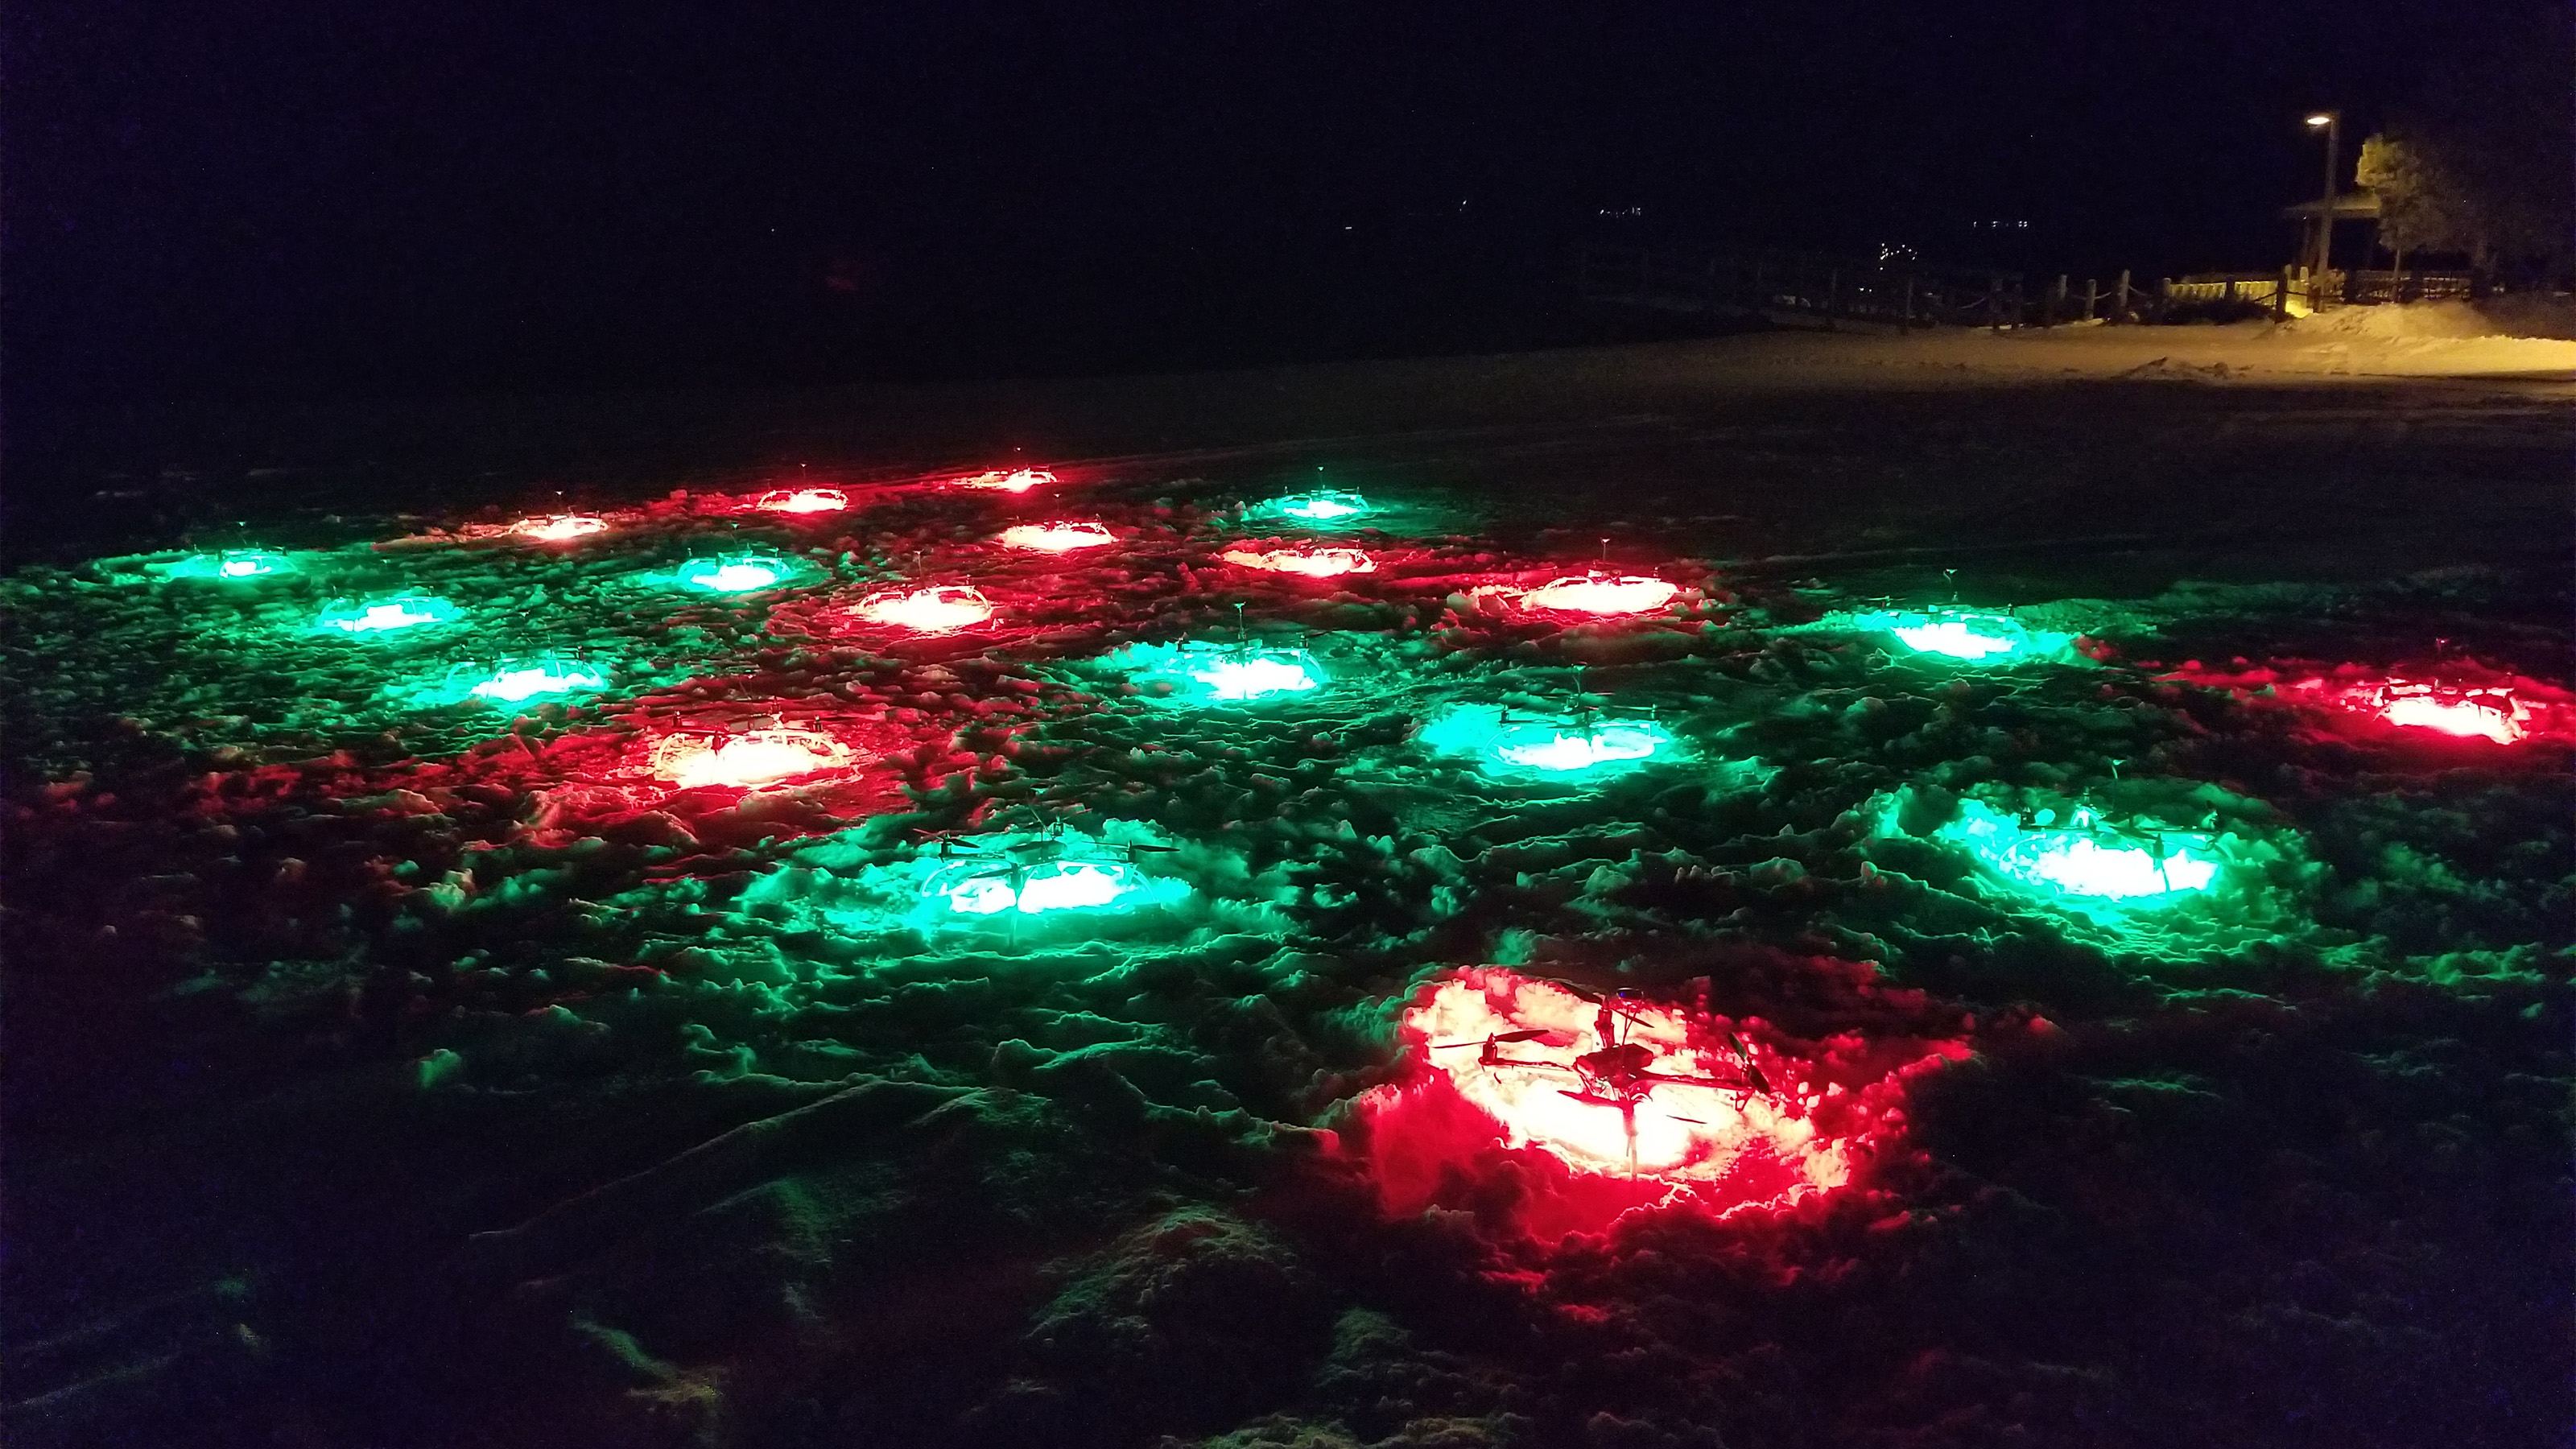 These custom drones have bright LEDs that can create virtually any color in the RGB spectrum. Photo courtesy of the Great Lakes Drone Company.